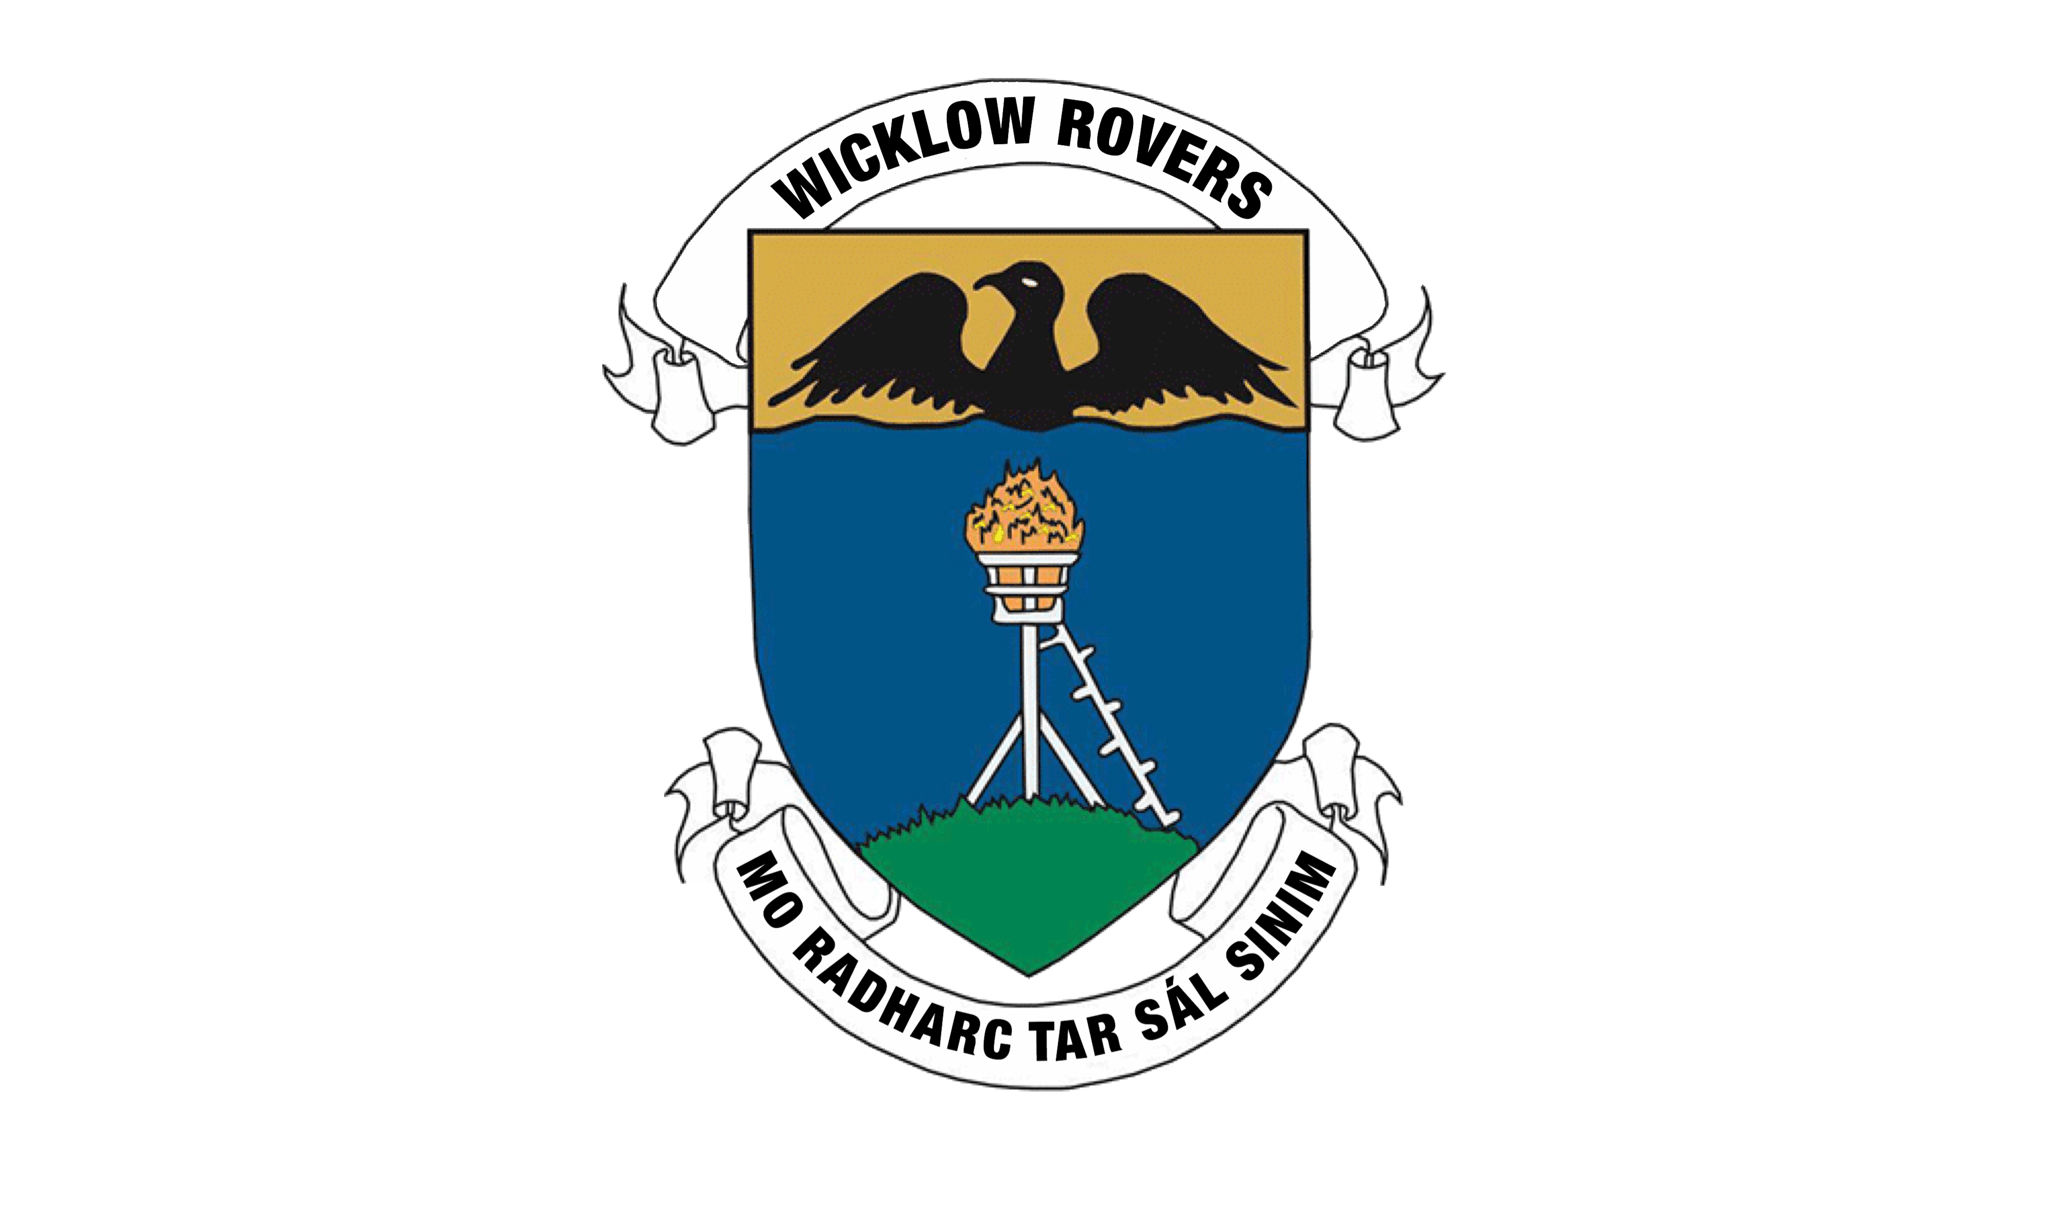 Wicklow Rovers